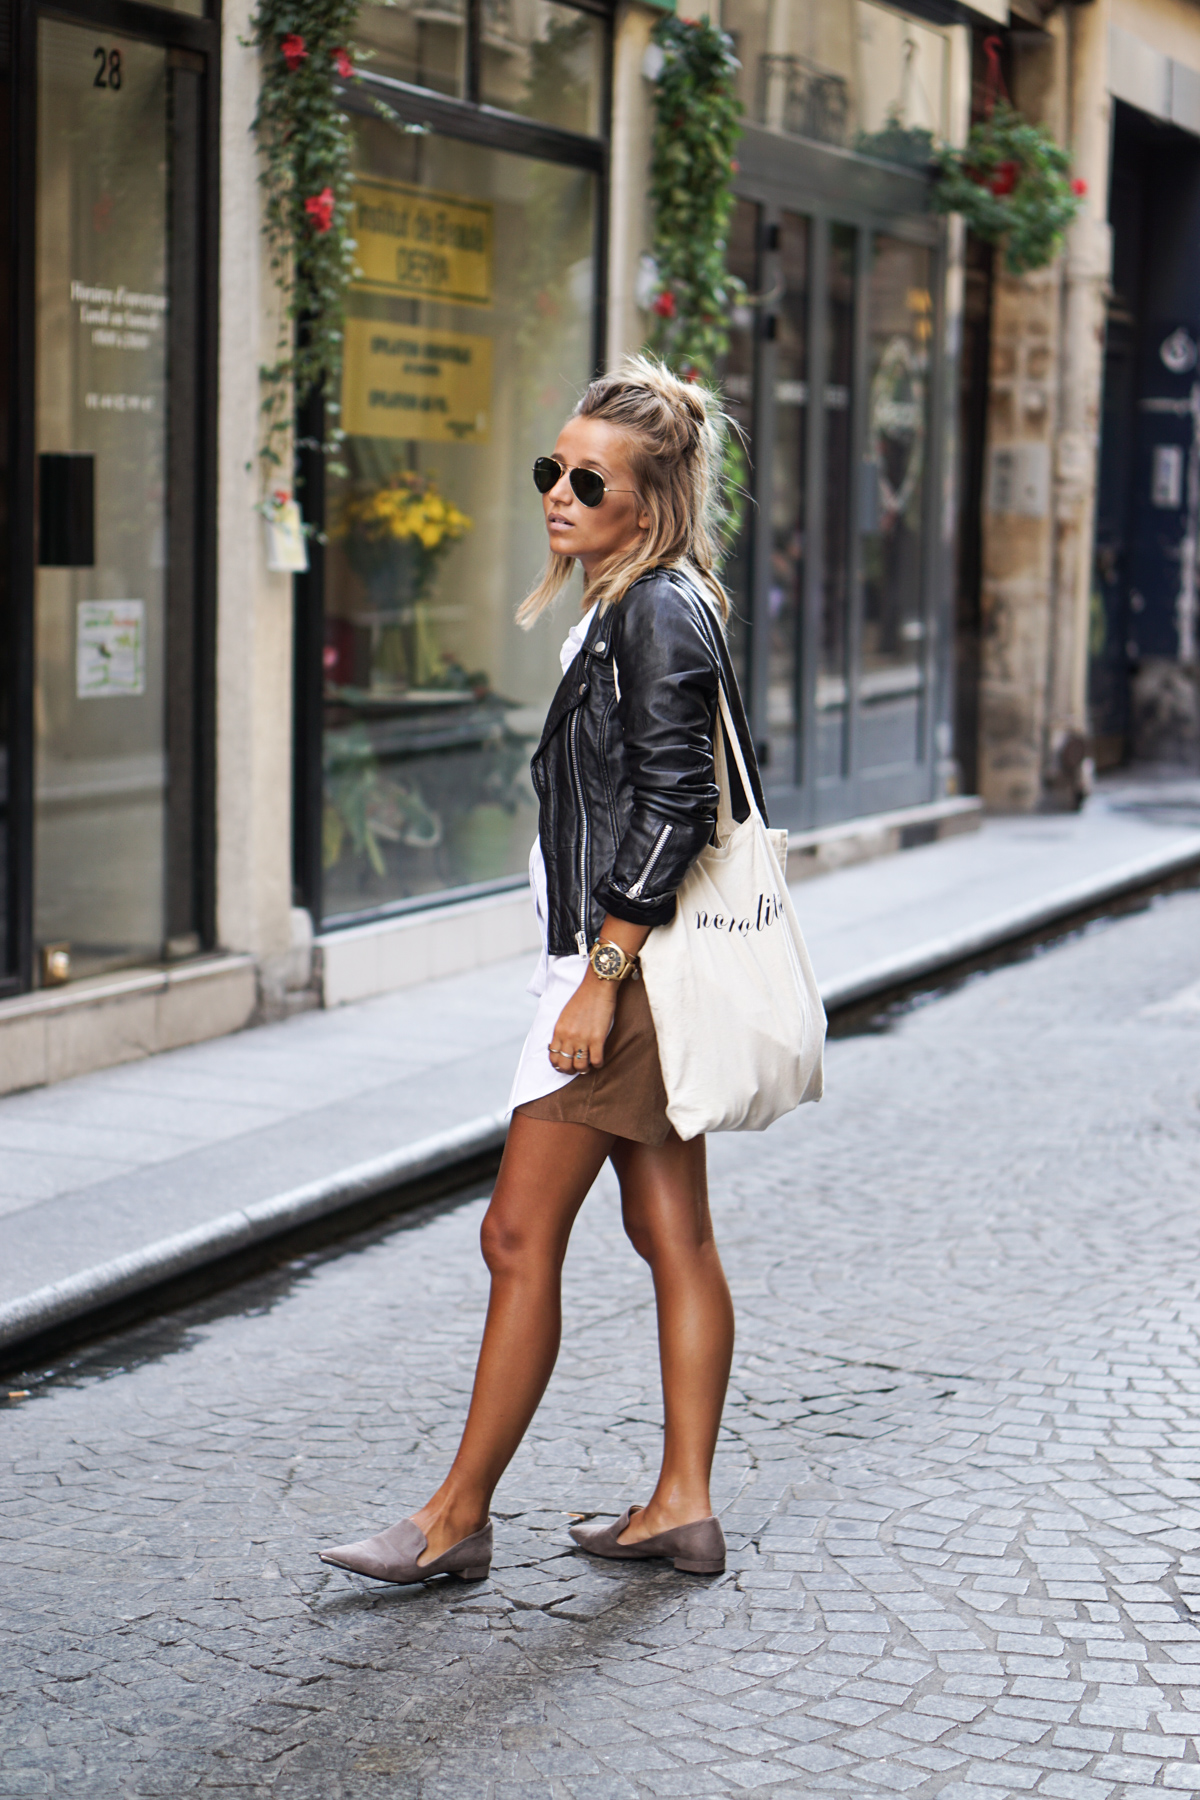 Leather jackets are the ultimate fall must-have item. Pair yours with simple pumps and beige shorts to get a sophisticated streetwear look. Via Camille Callen. Jacket: Sheinside, Shorts: Jennyfer.